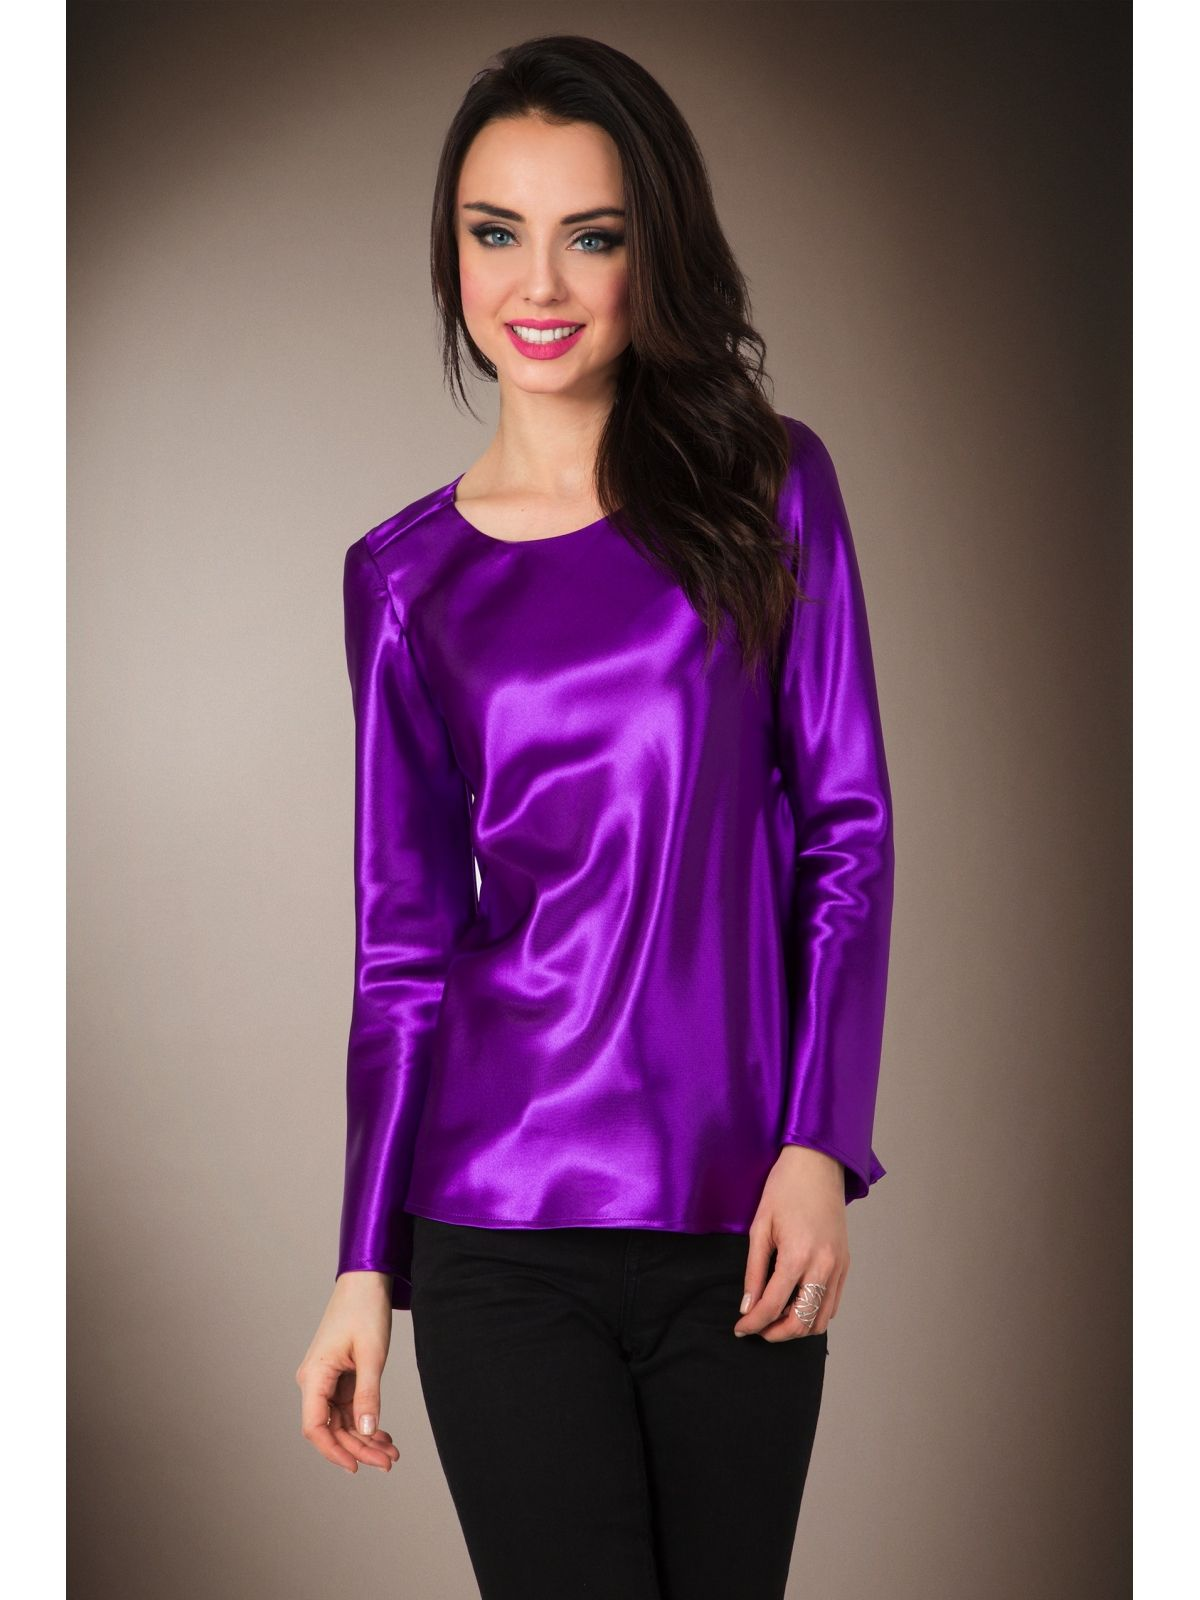 a49631690df1f2 Purple violet satin long-sleeved T-shirt blouse Blouse Sexy